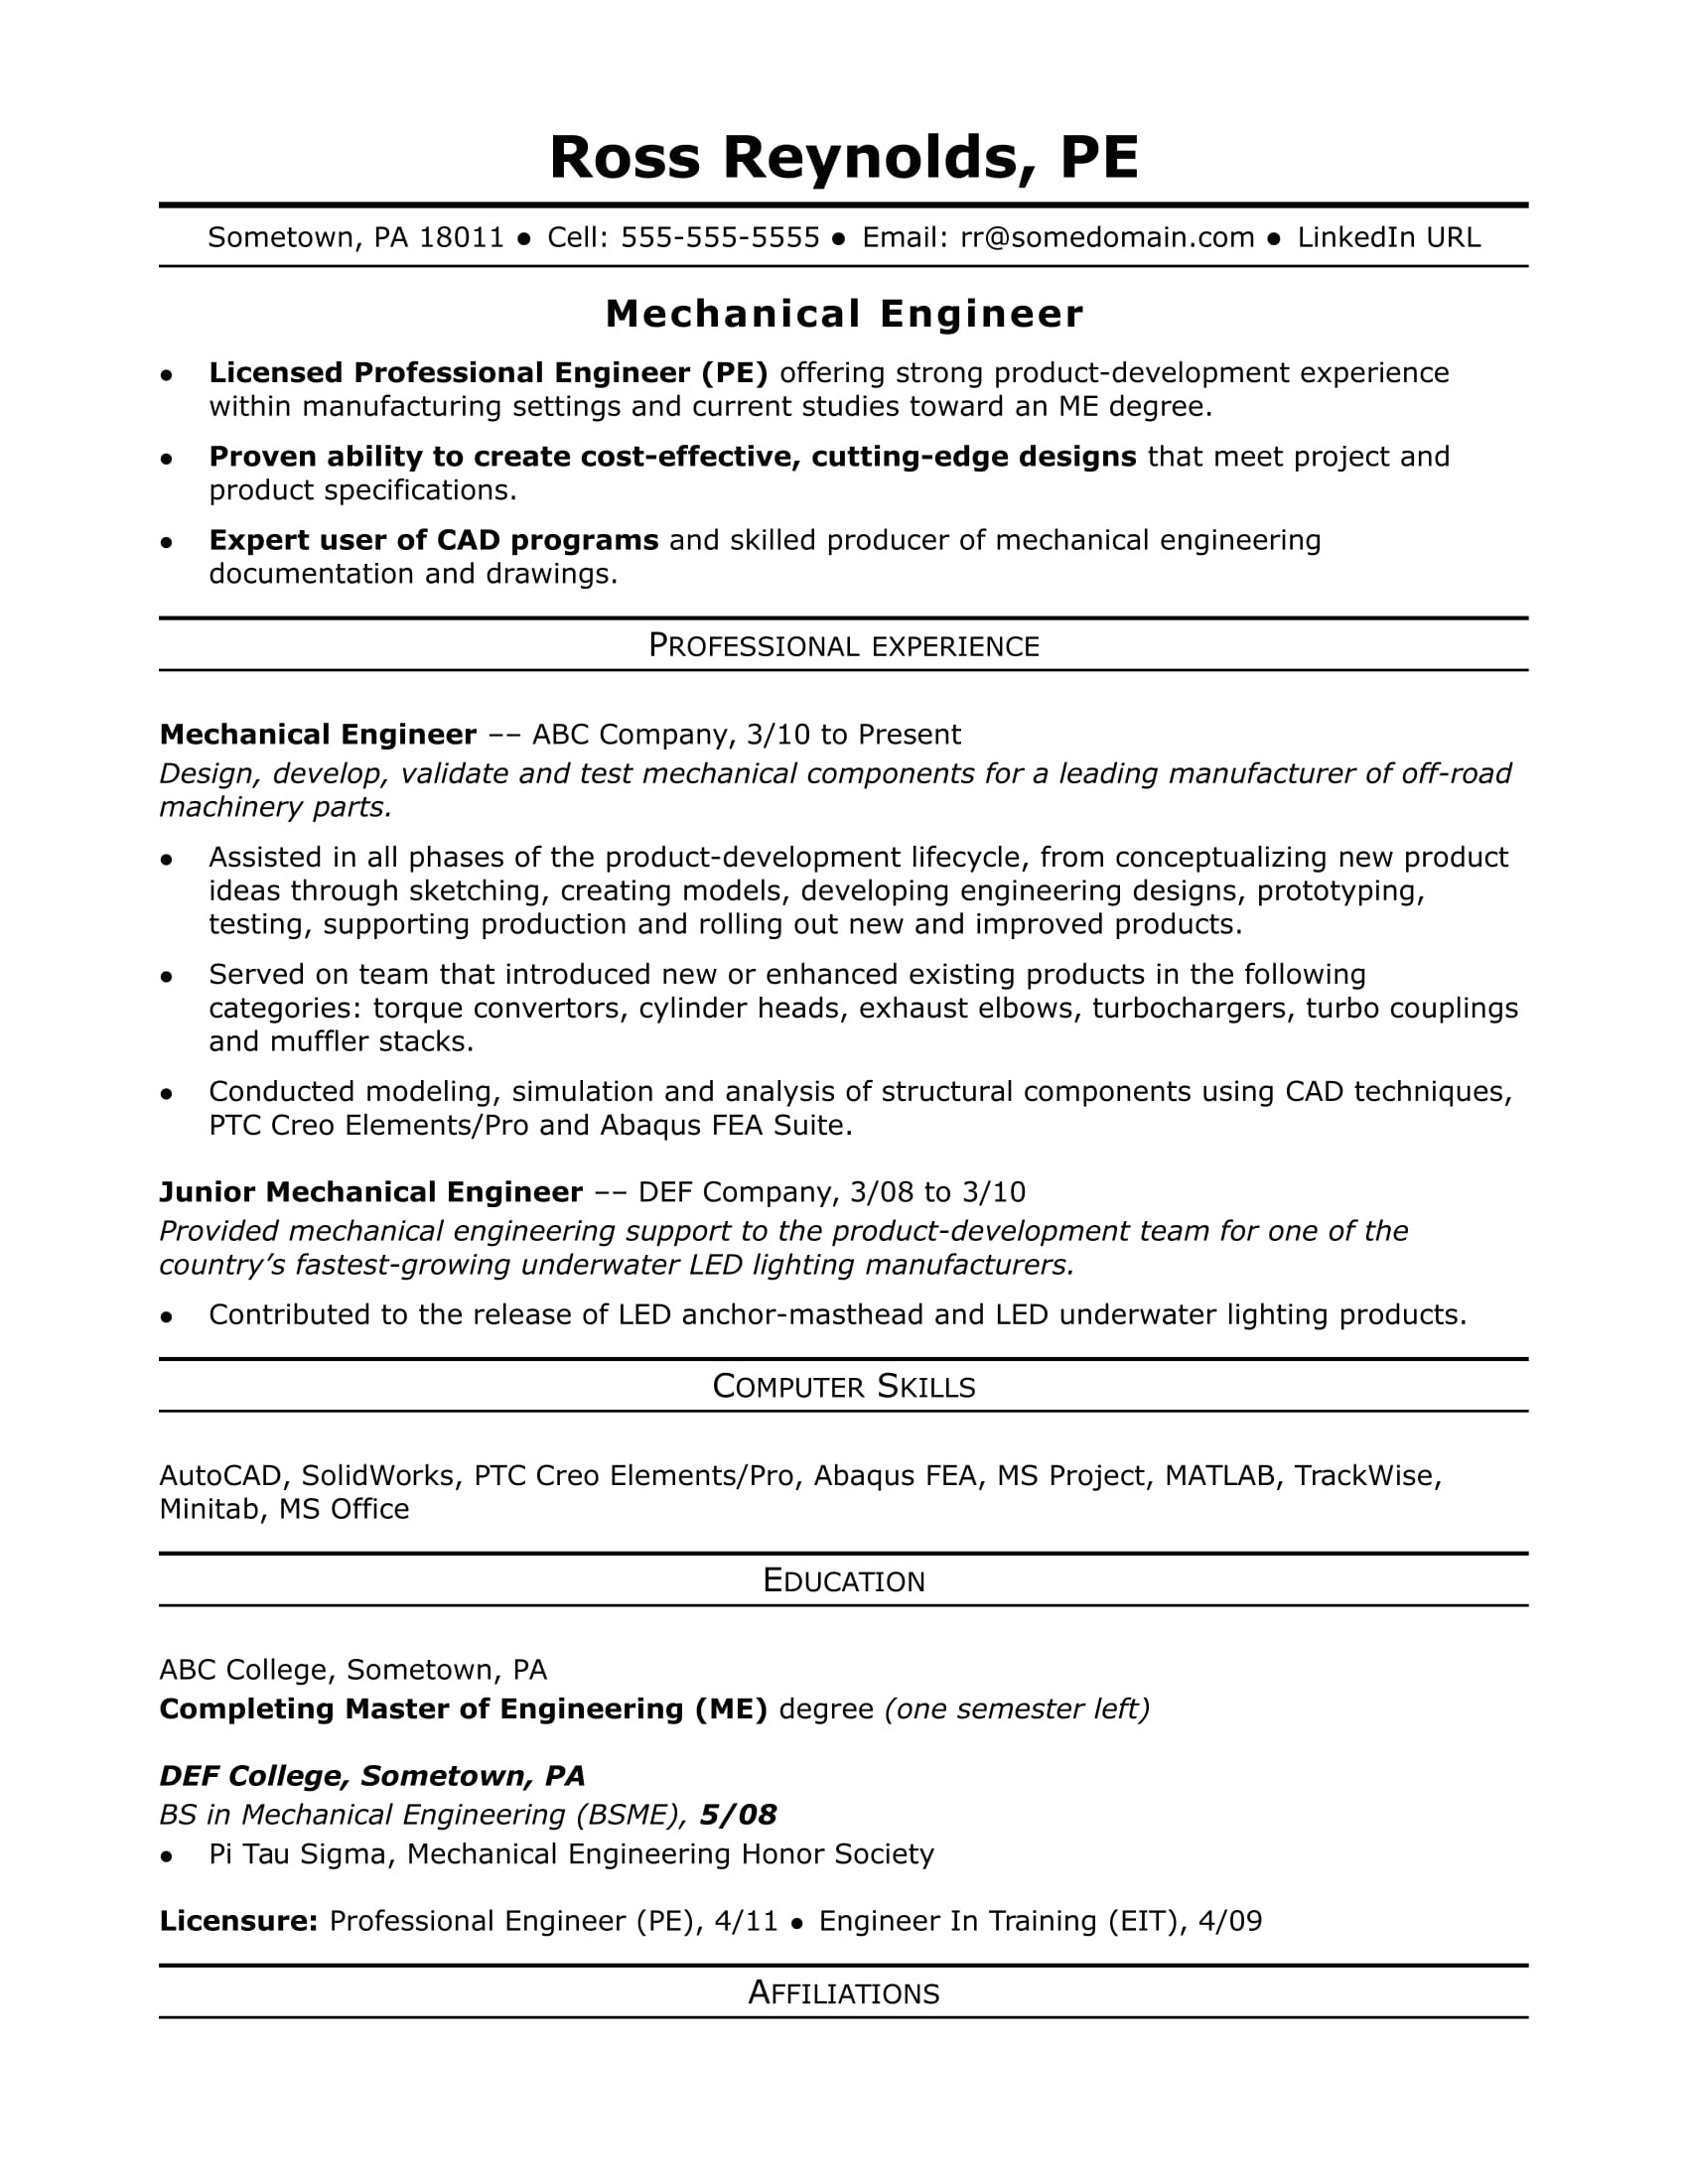 Mechanical Engineer Qualifications Resume Sample Resume for A Midlevel Mechanical Engineer Monster Com